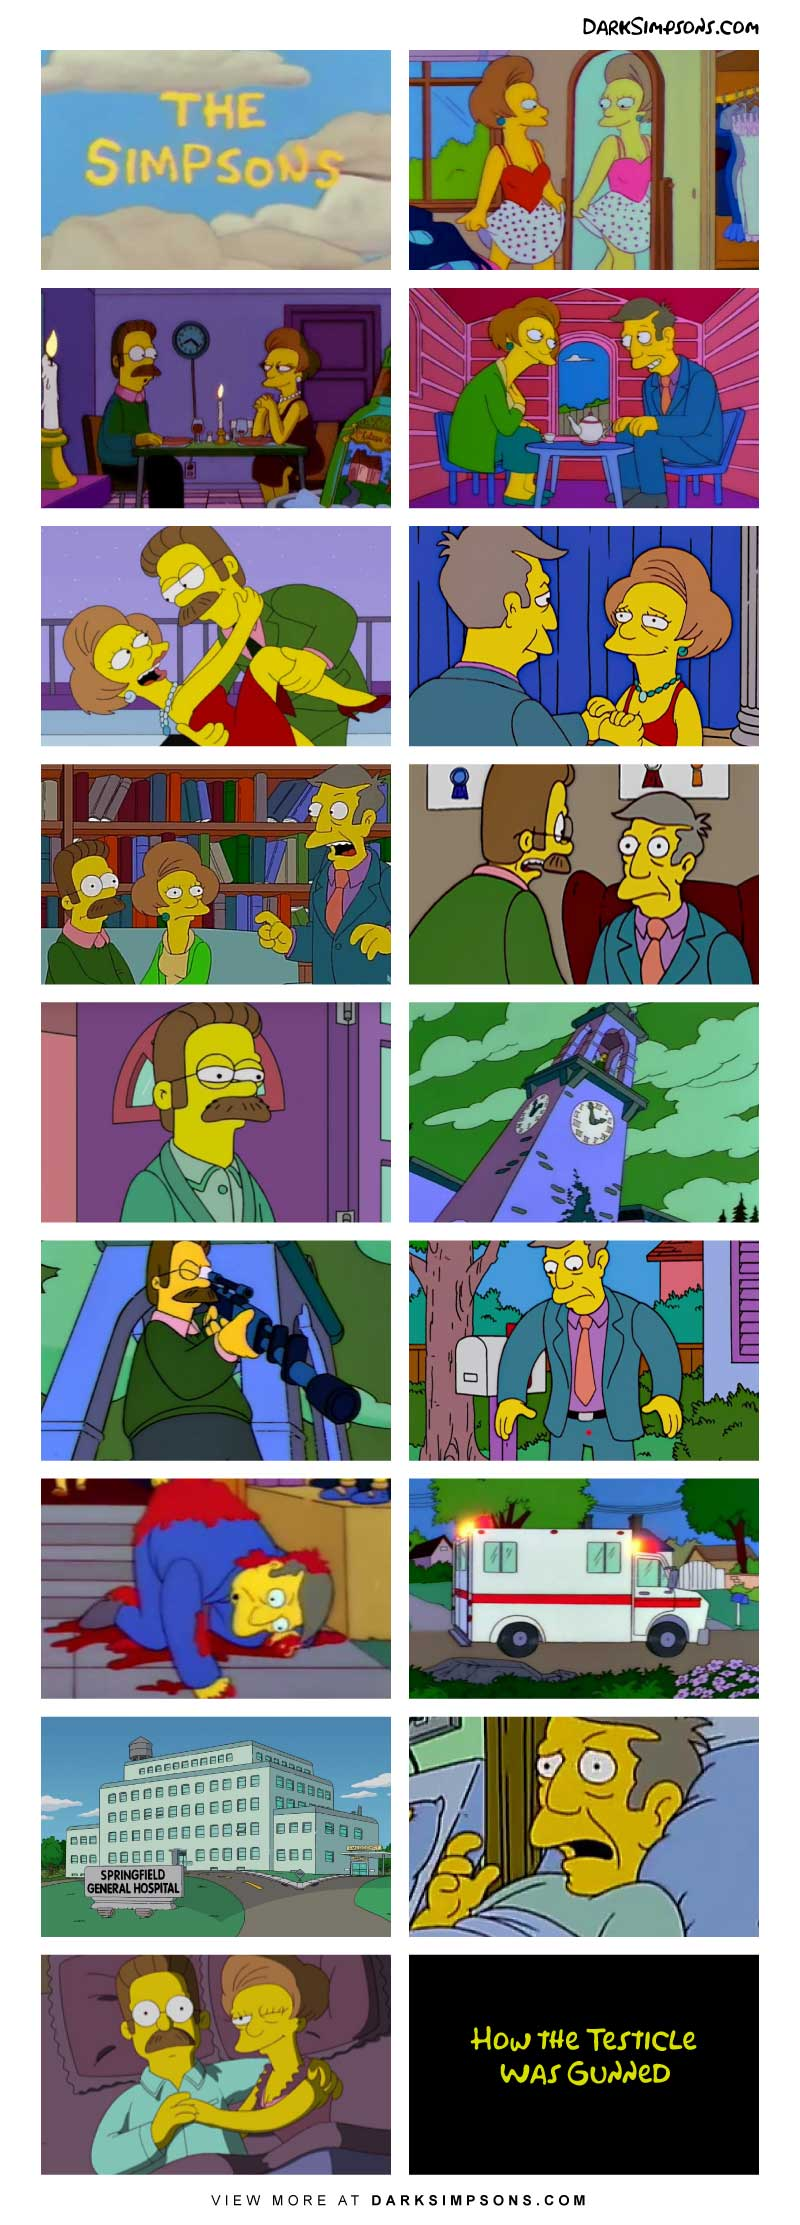 Edna has been casually dating both Ned Flanders and Principal Skinner.  When they find out about each other, they get very angry, and like all men, they over-react.